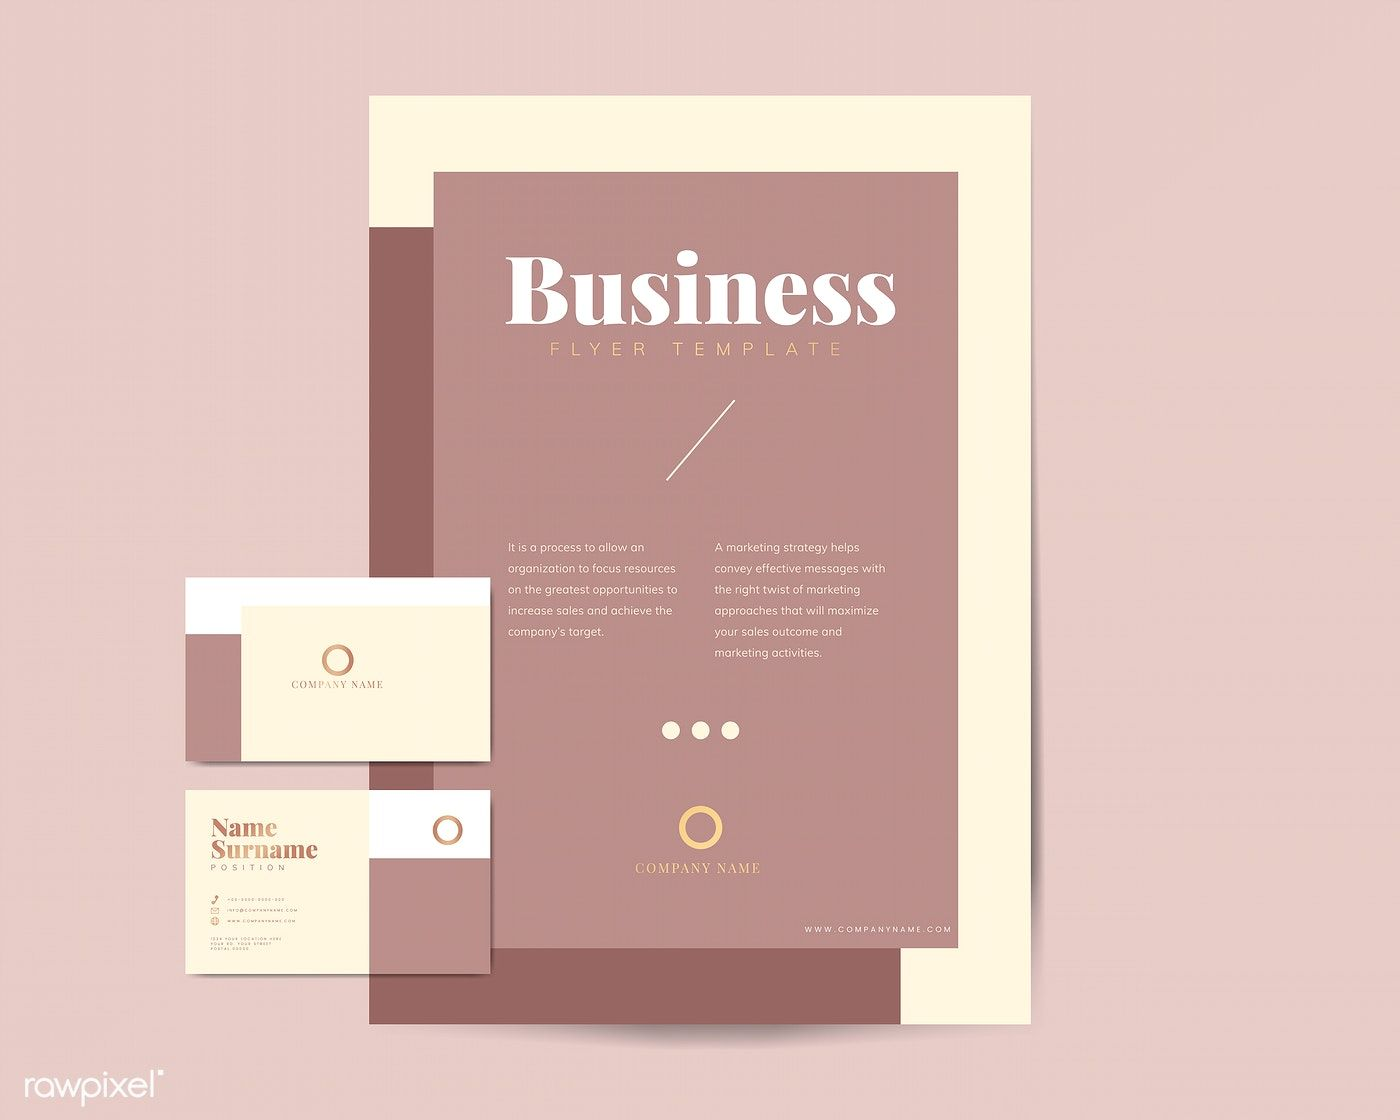 Corporate Flyer And Name Card Template Vectors Free Image By Rawpixel Com Tvzsu Corporate Flyer Vector Free Card Template